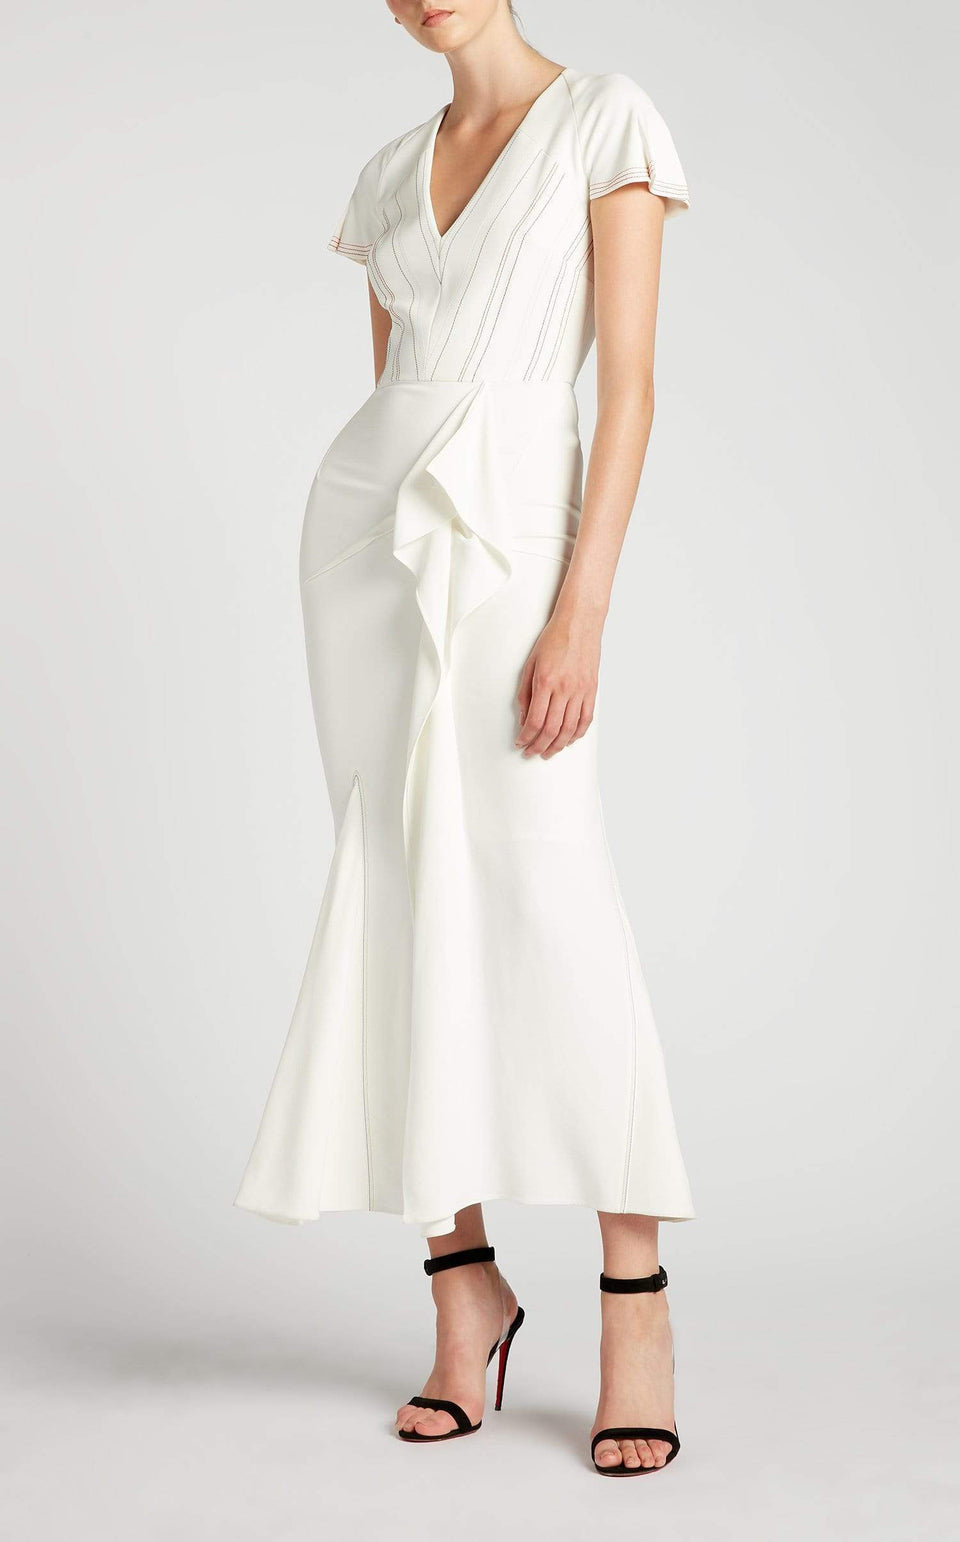 Bates Dress In White Multi from Roland Mouret